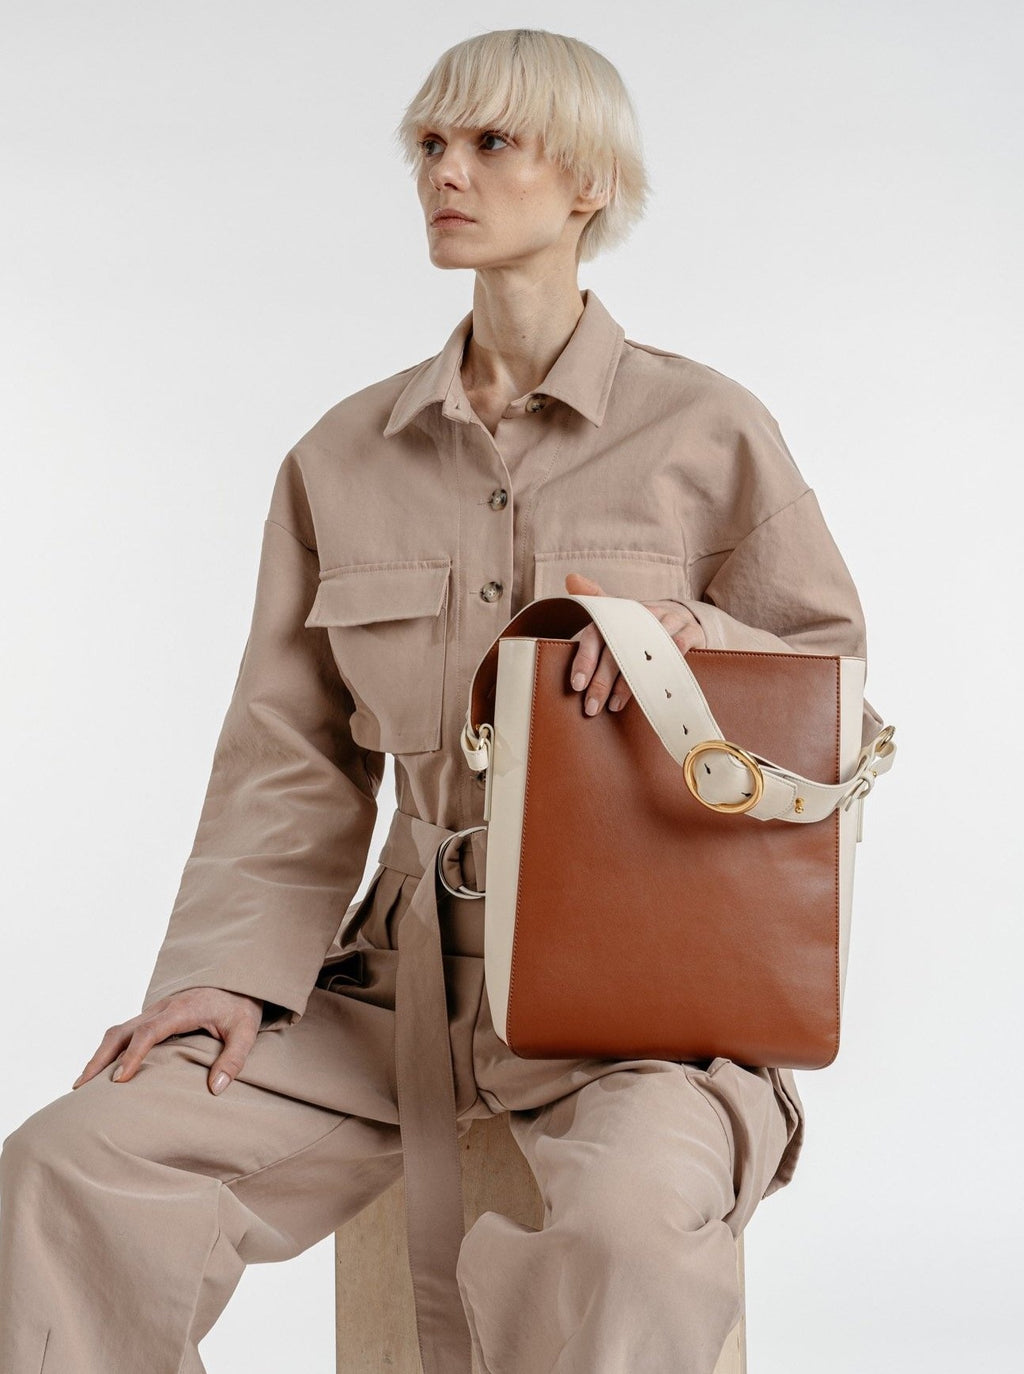 Allured Medium Tote Bag in Brown Cream | Parisa Wang | Featured